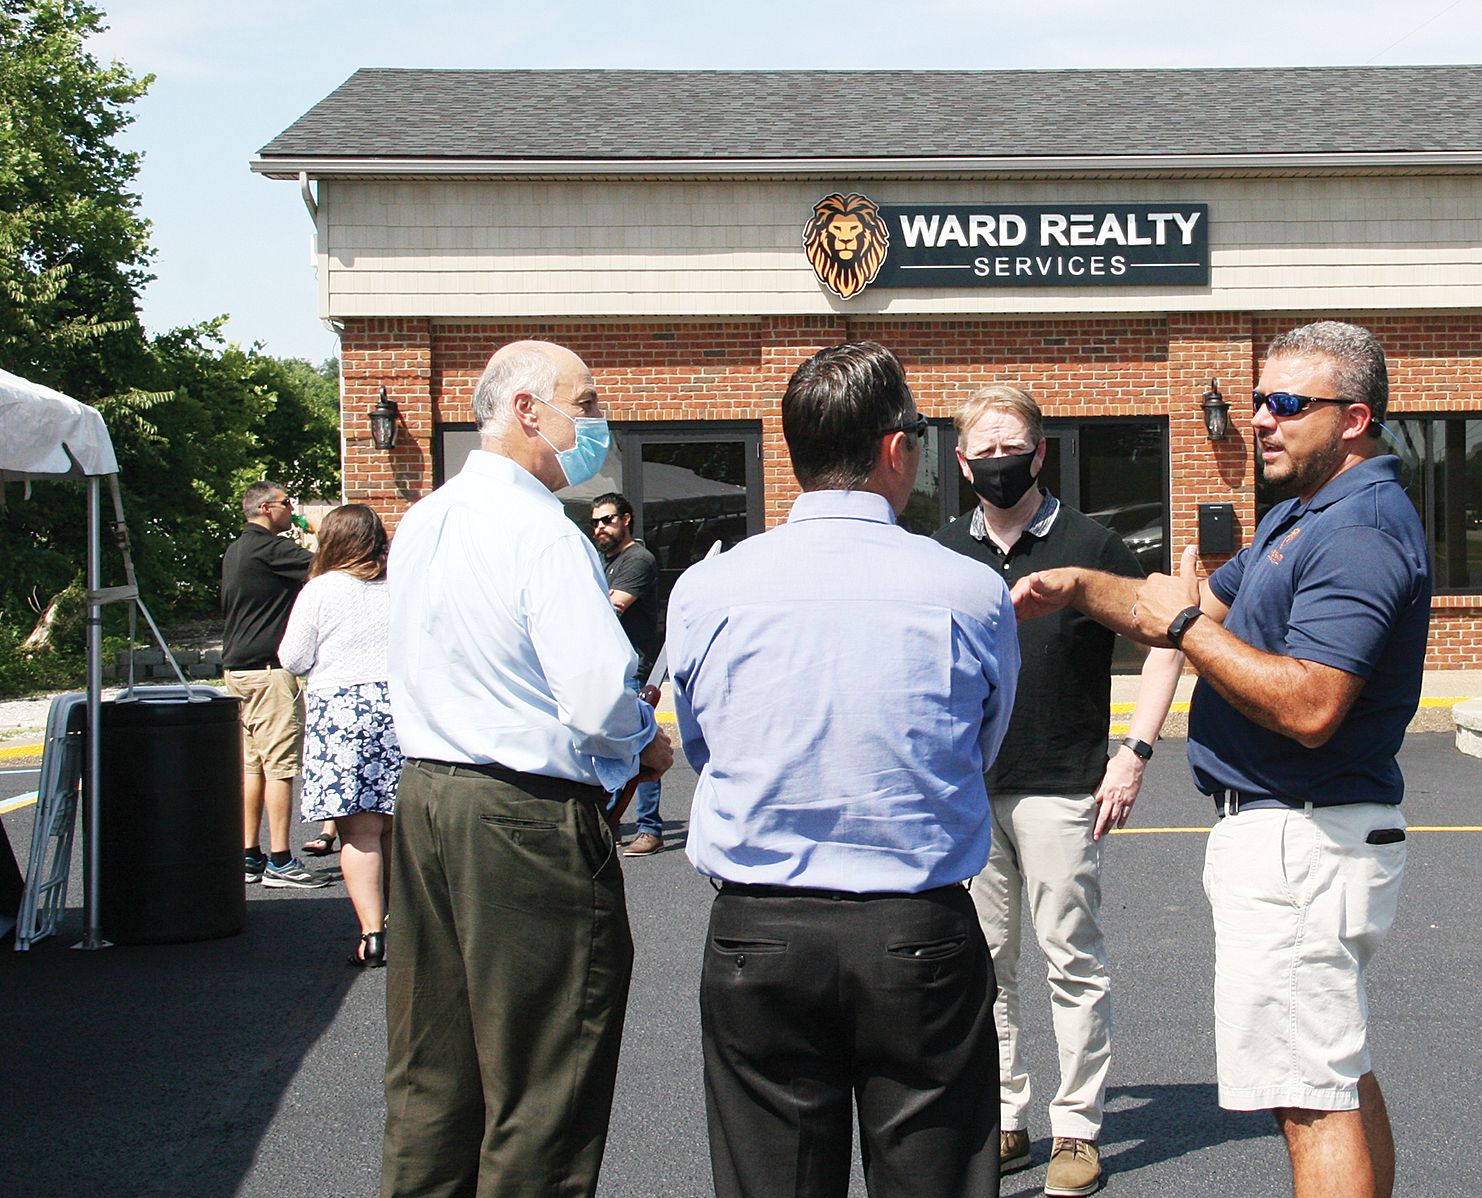 Ward Realty opens second location